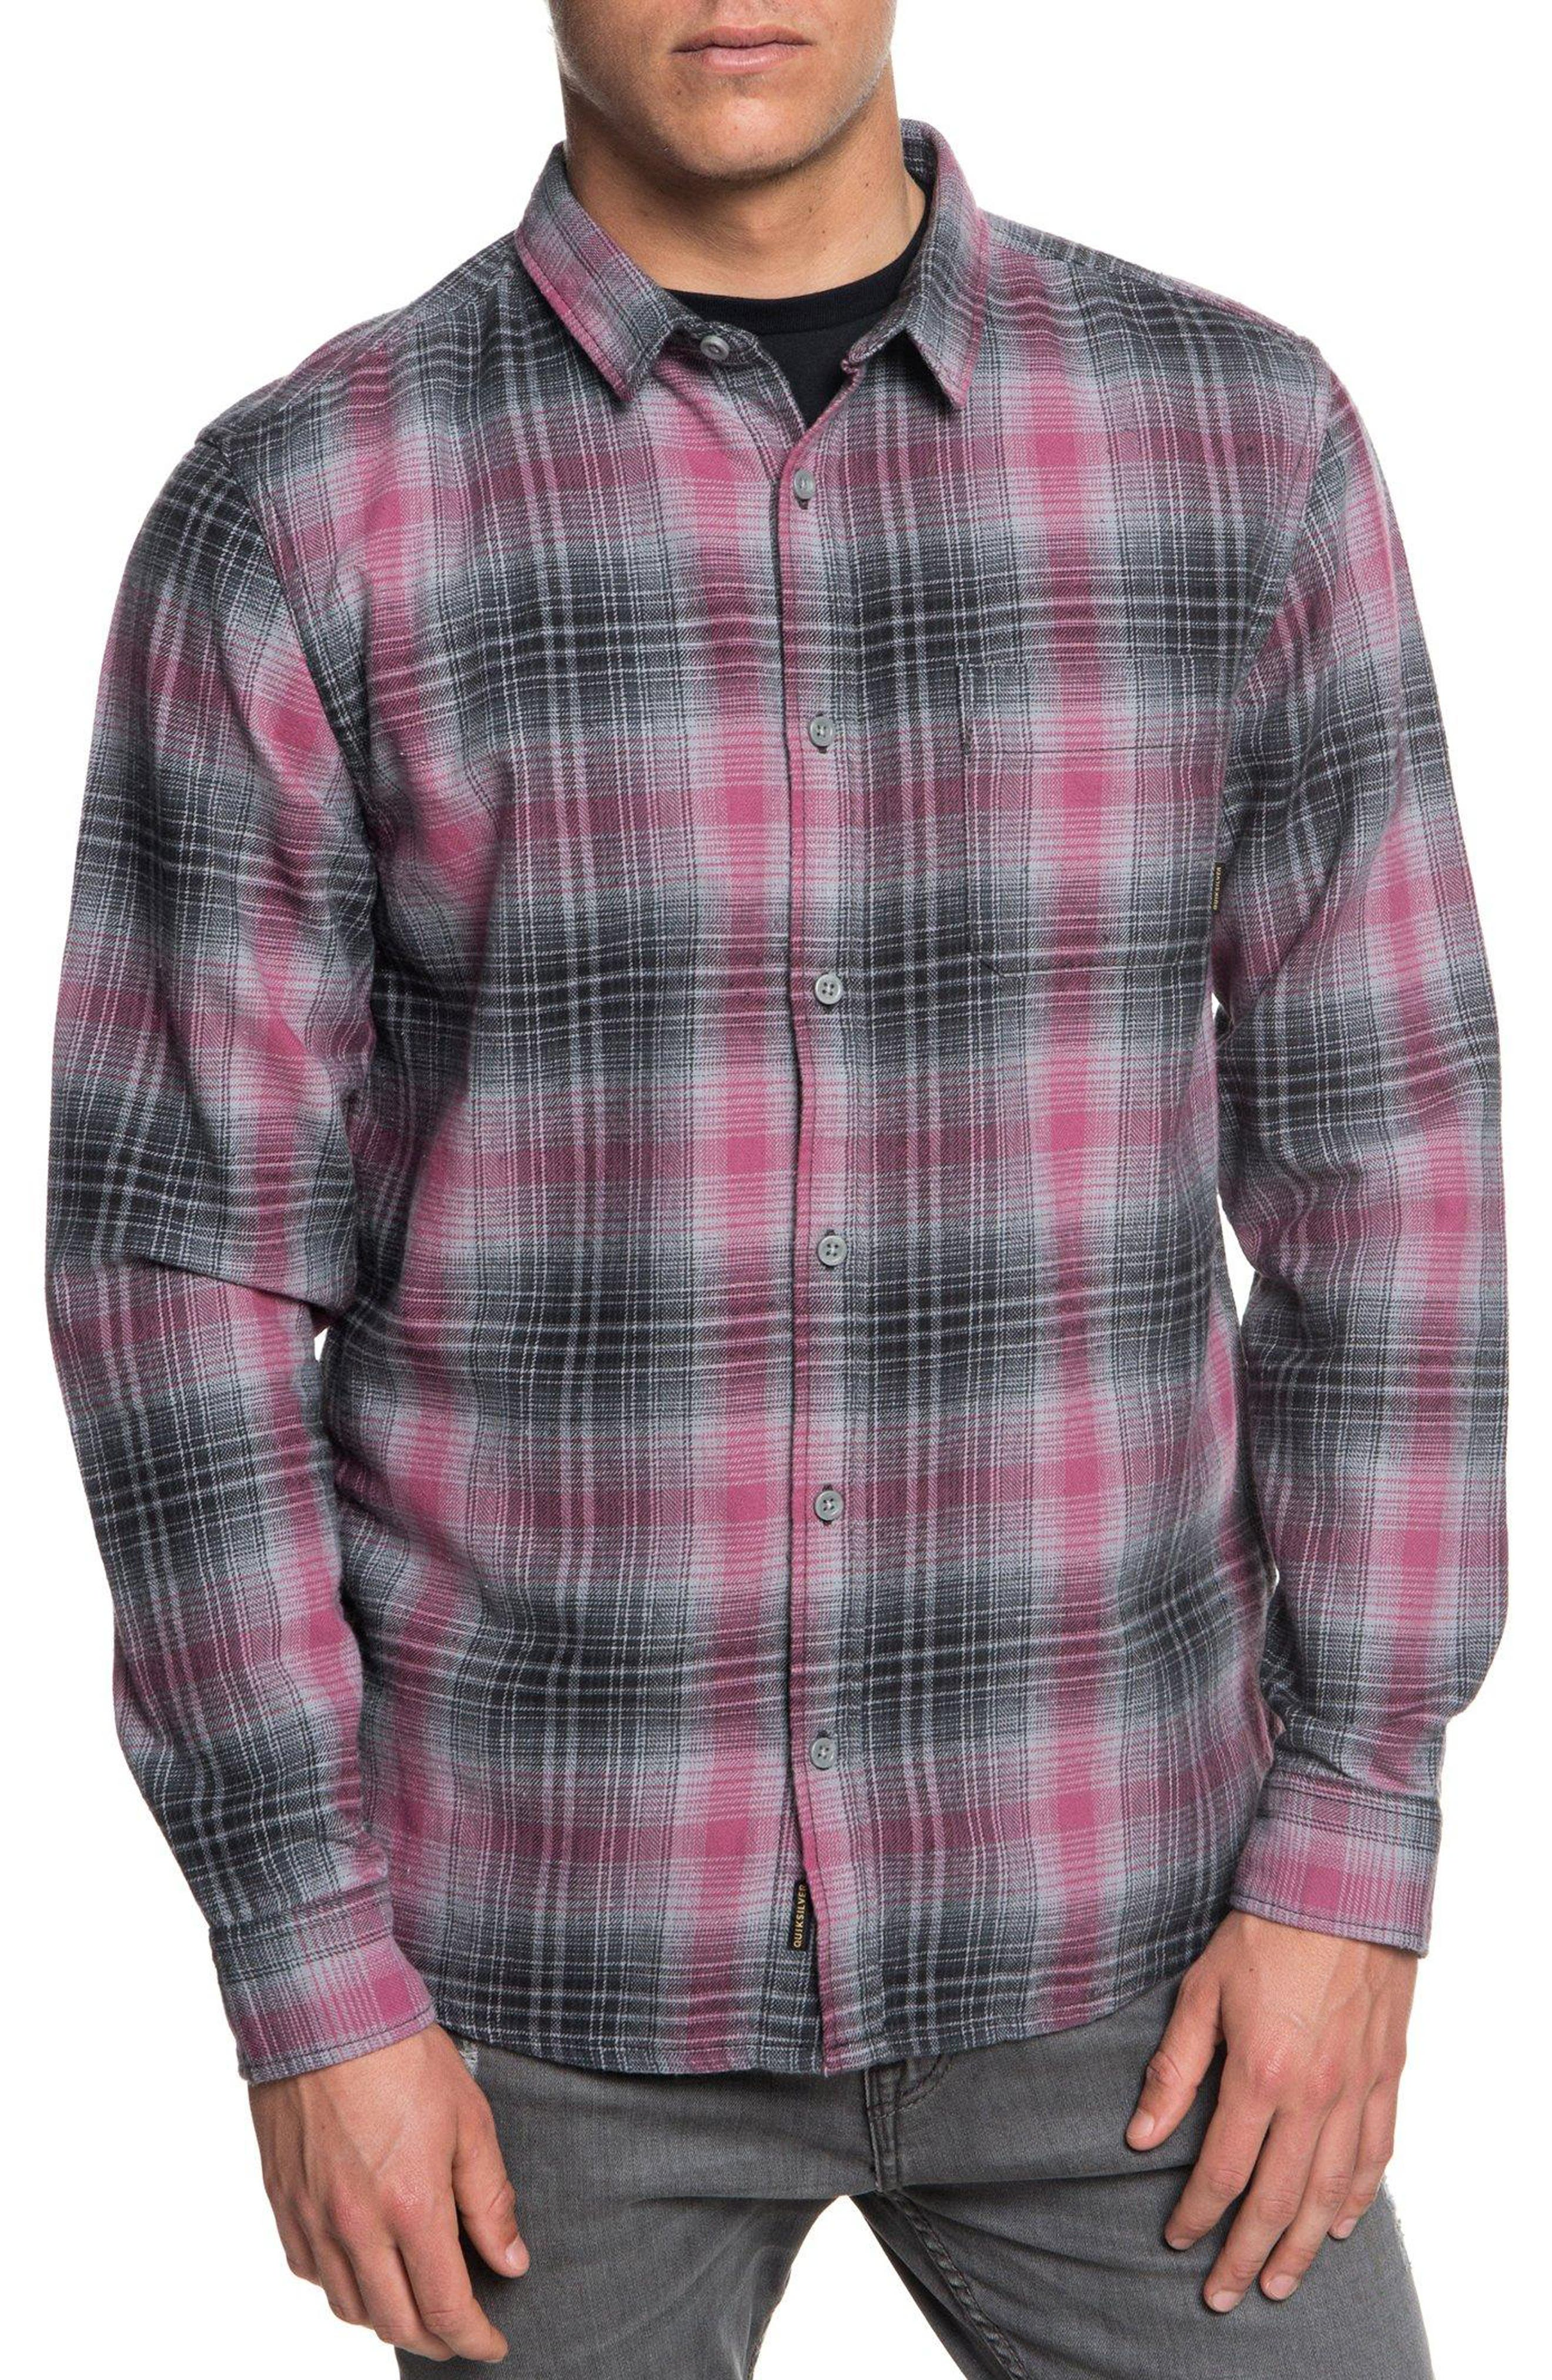 Fatherfly Flannel Shirt,                             Main thumbnail 1, color,                             TARMAC FATHERFLY CHECK